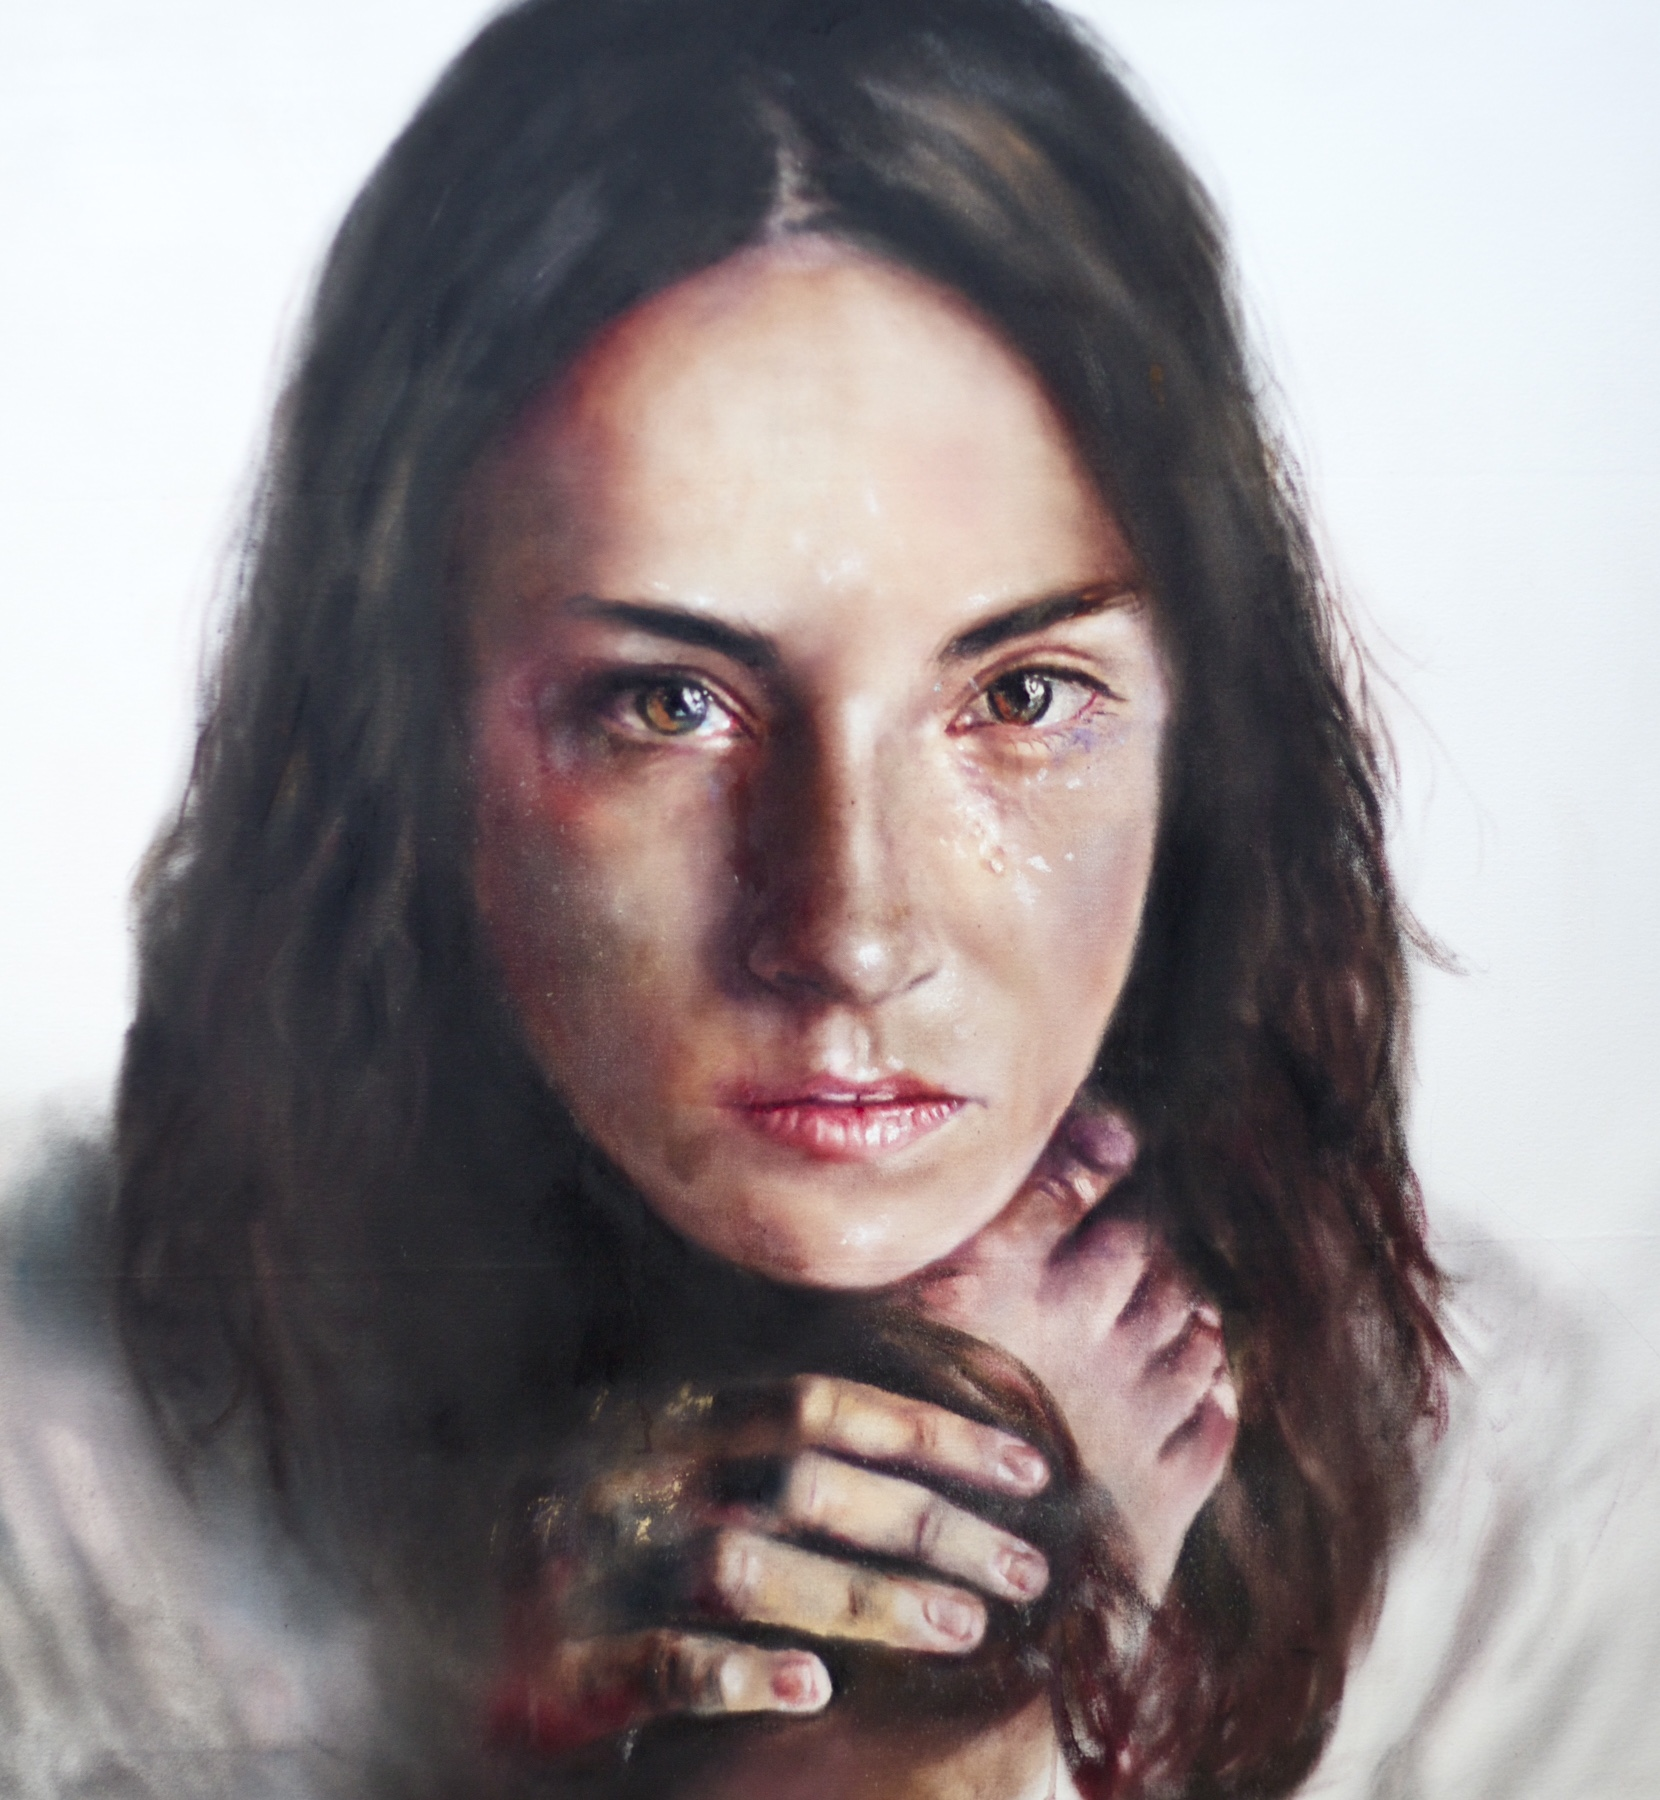 Alabaster woman, 48x44in, oil on canvas  Gentile embrace series